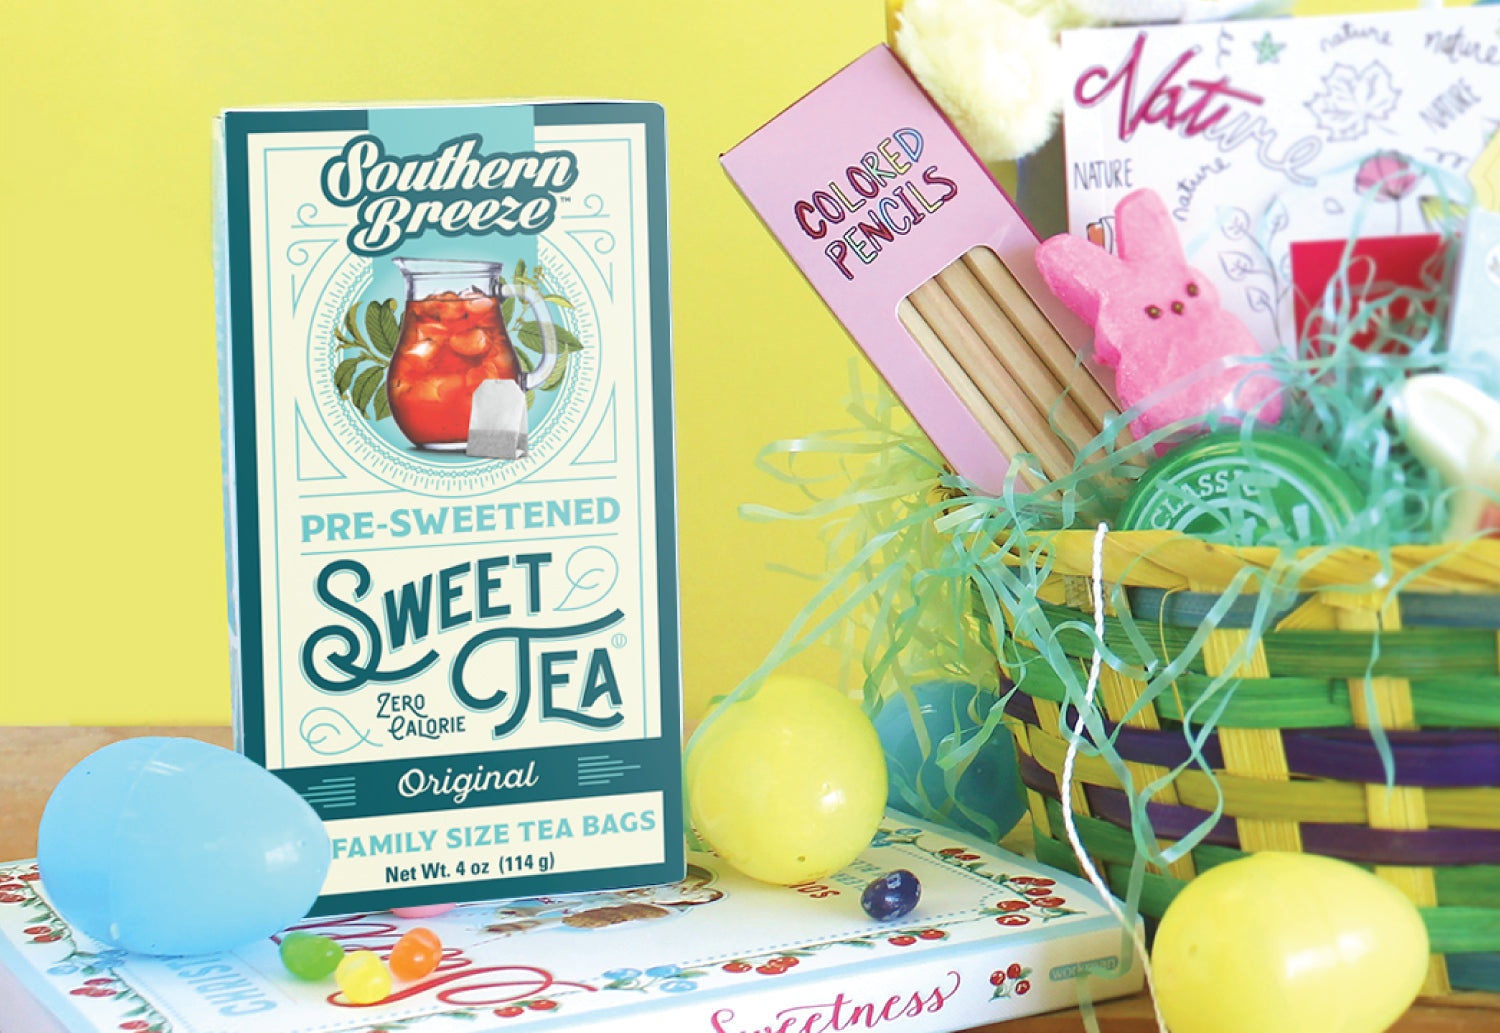 Southern Breeze Sweet Tea Easter Basket